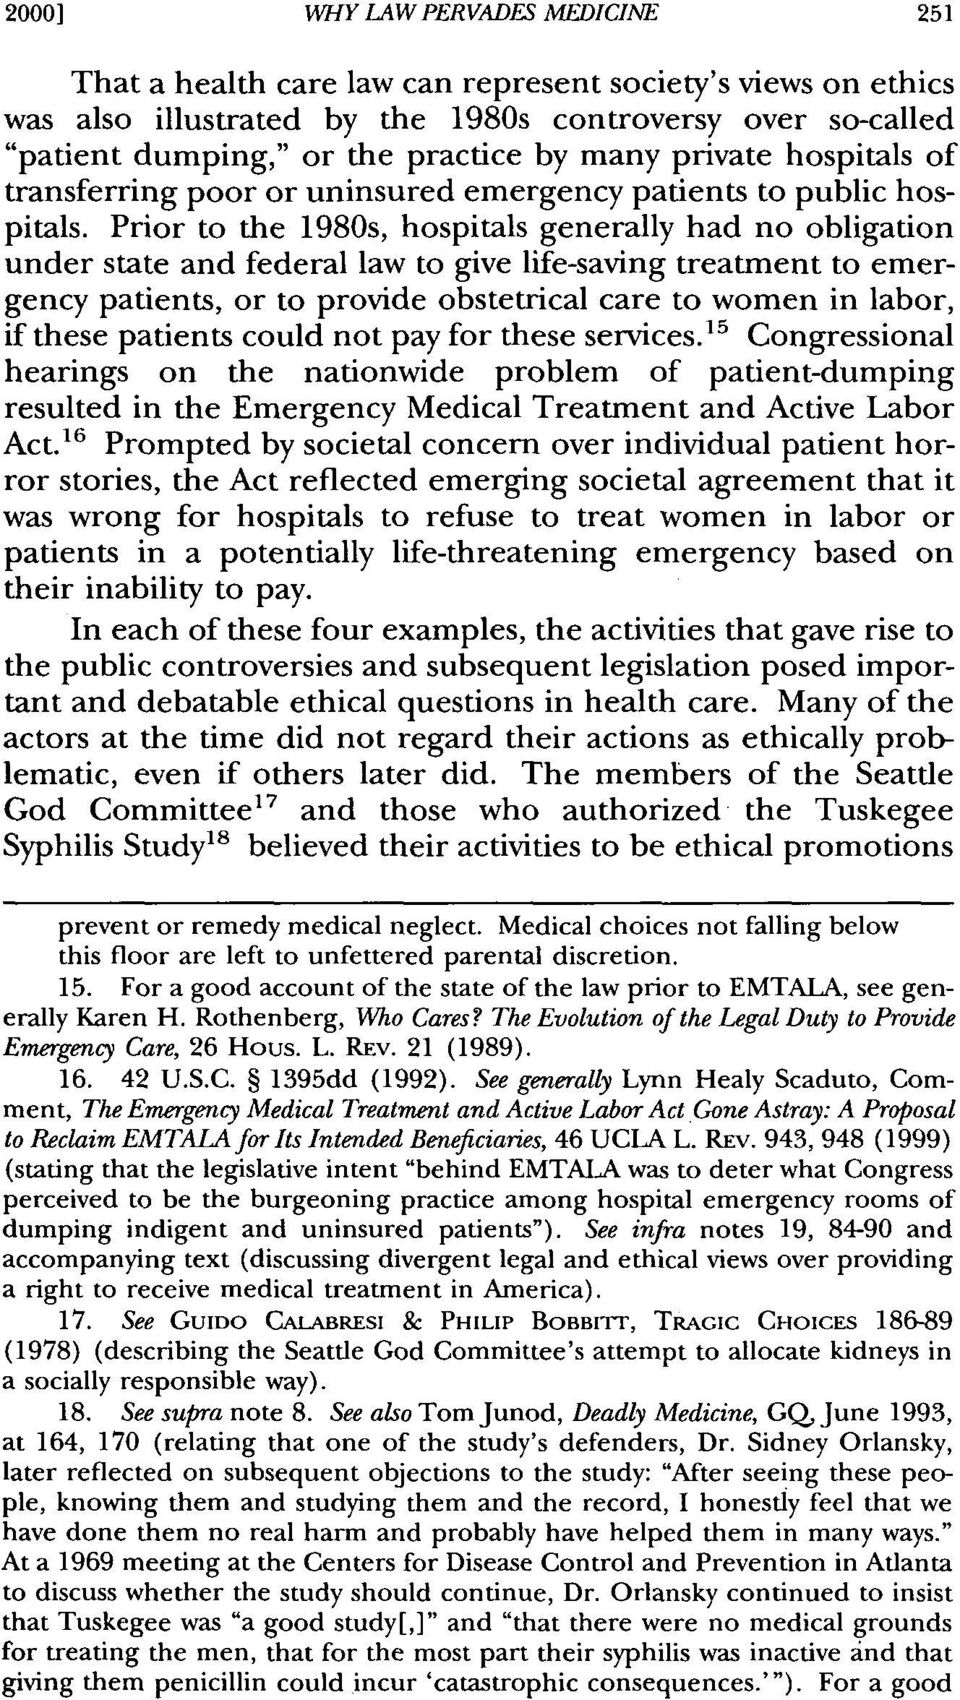 Prior to the 1980s, hospitals generally had no obligation under state and federal law to give life-saving treatment to emergency patients, or to provide obstetrical care to women in labor, if these